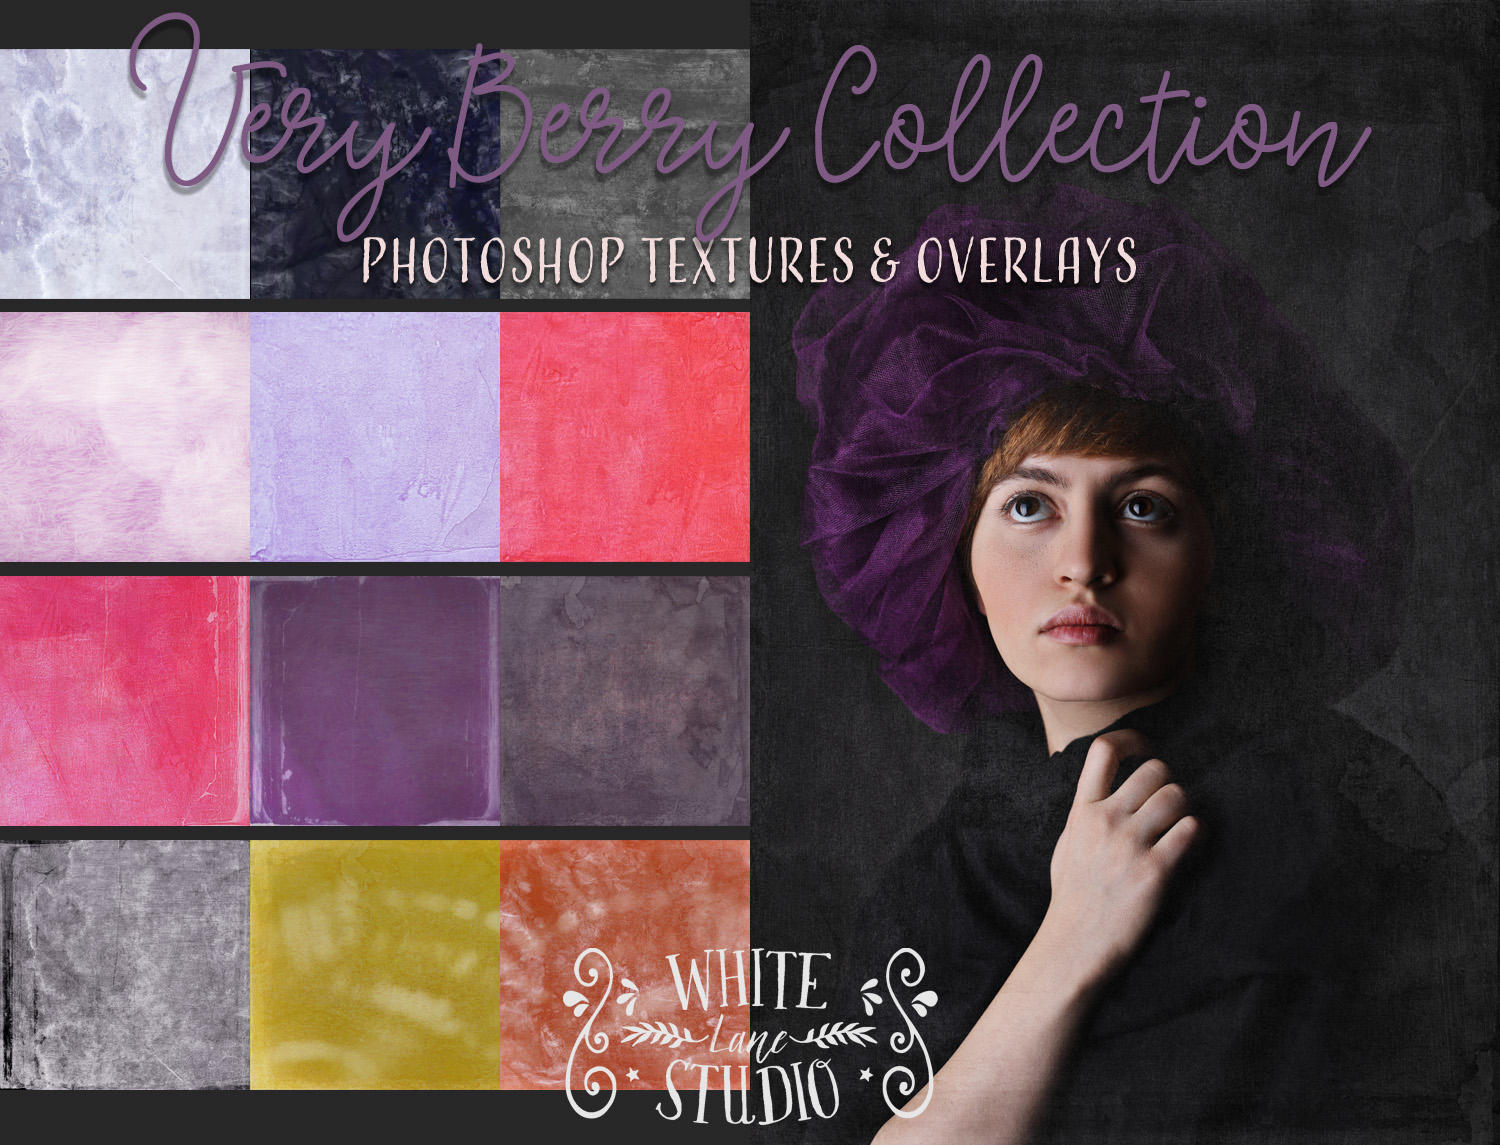 Very Berry Textures Collection